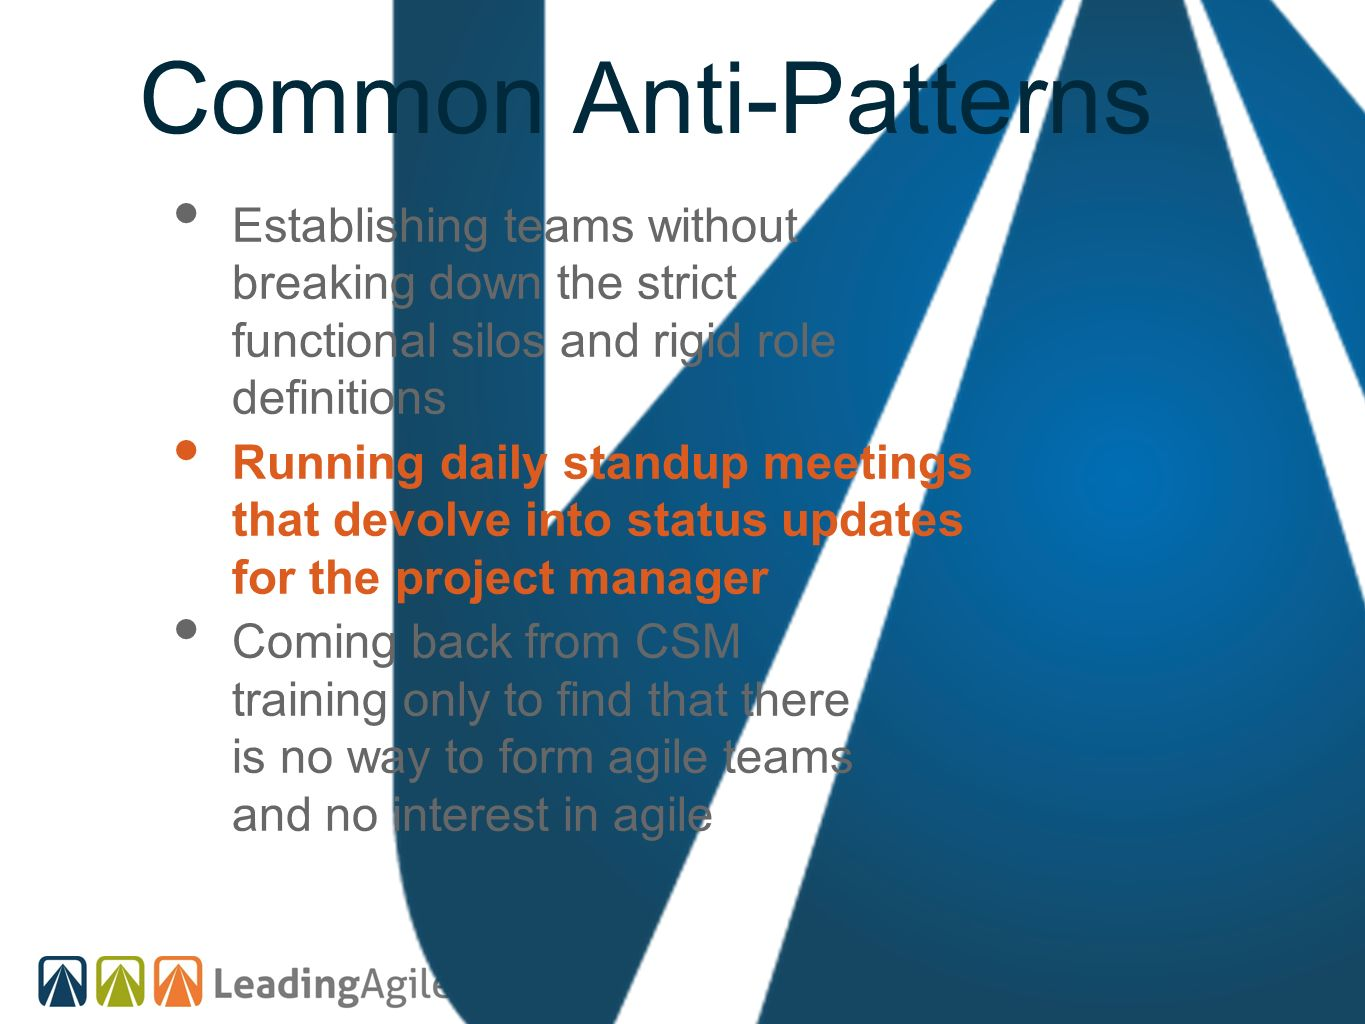 Common Anti-Patterns Establishing teams without breaking down the strict functional silos and rigid role definitions.